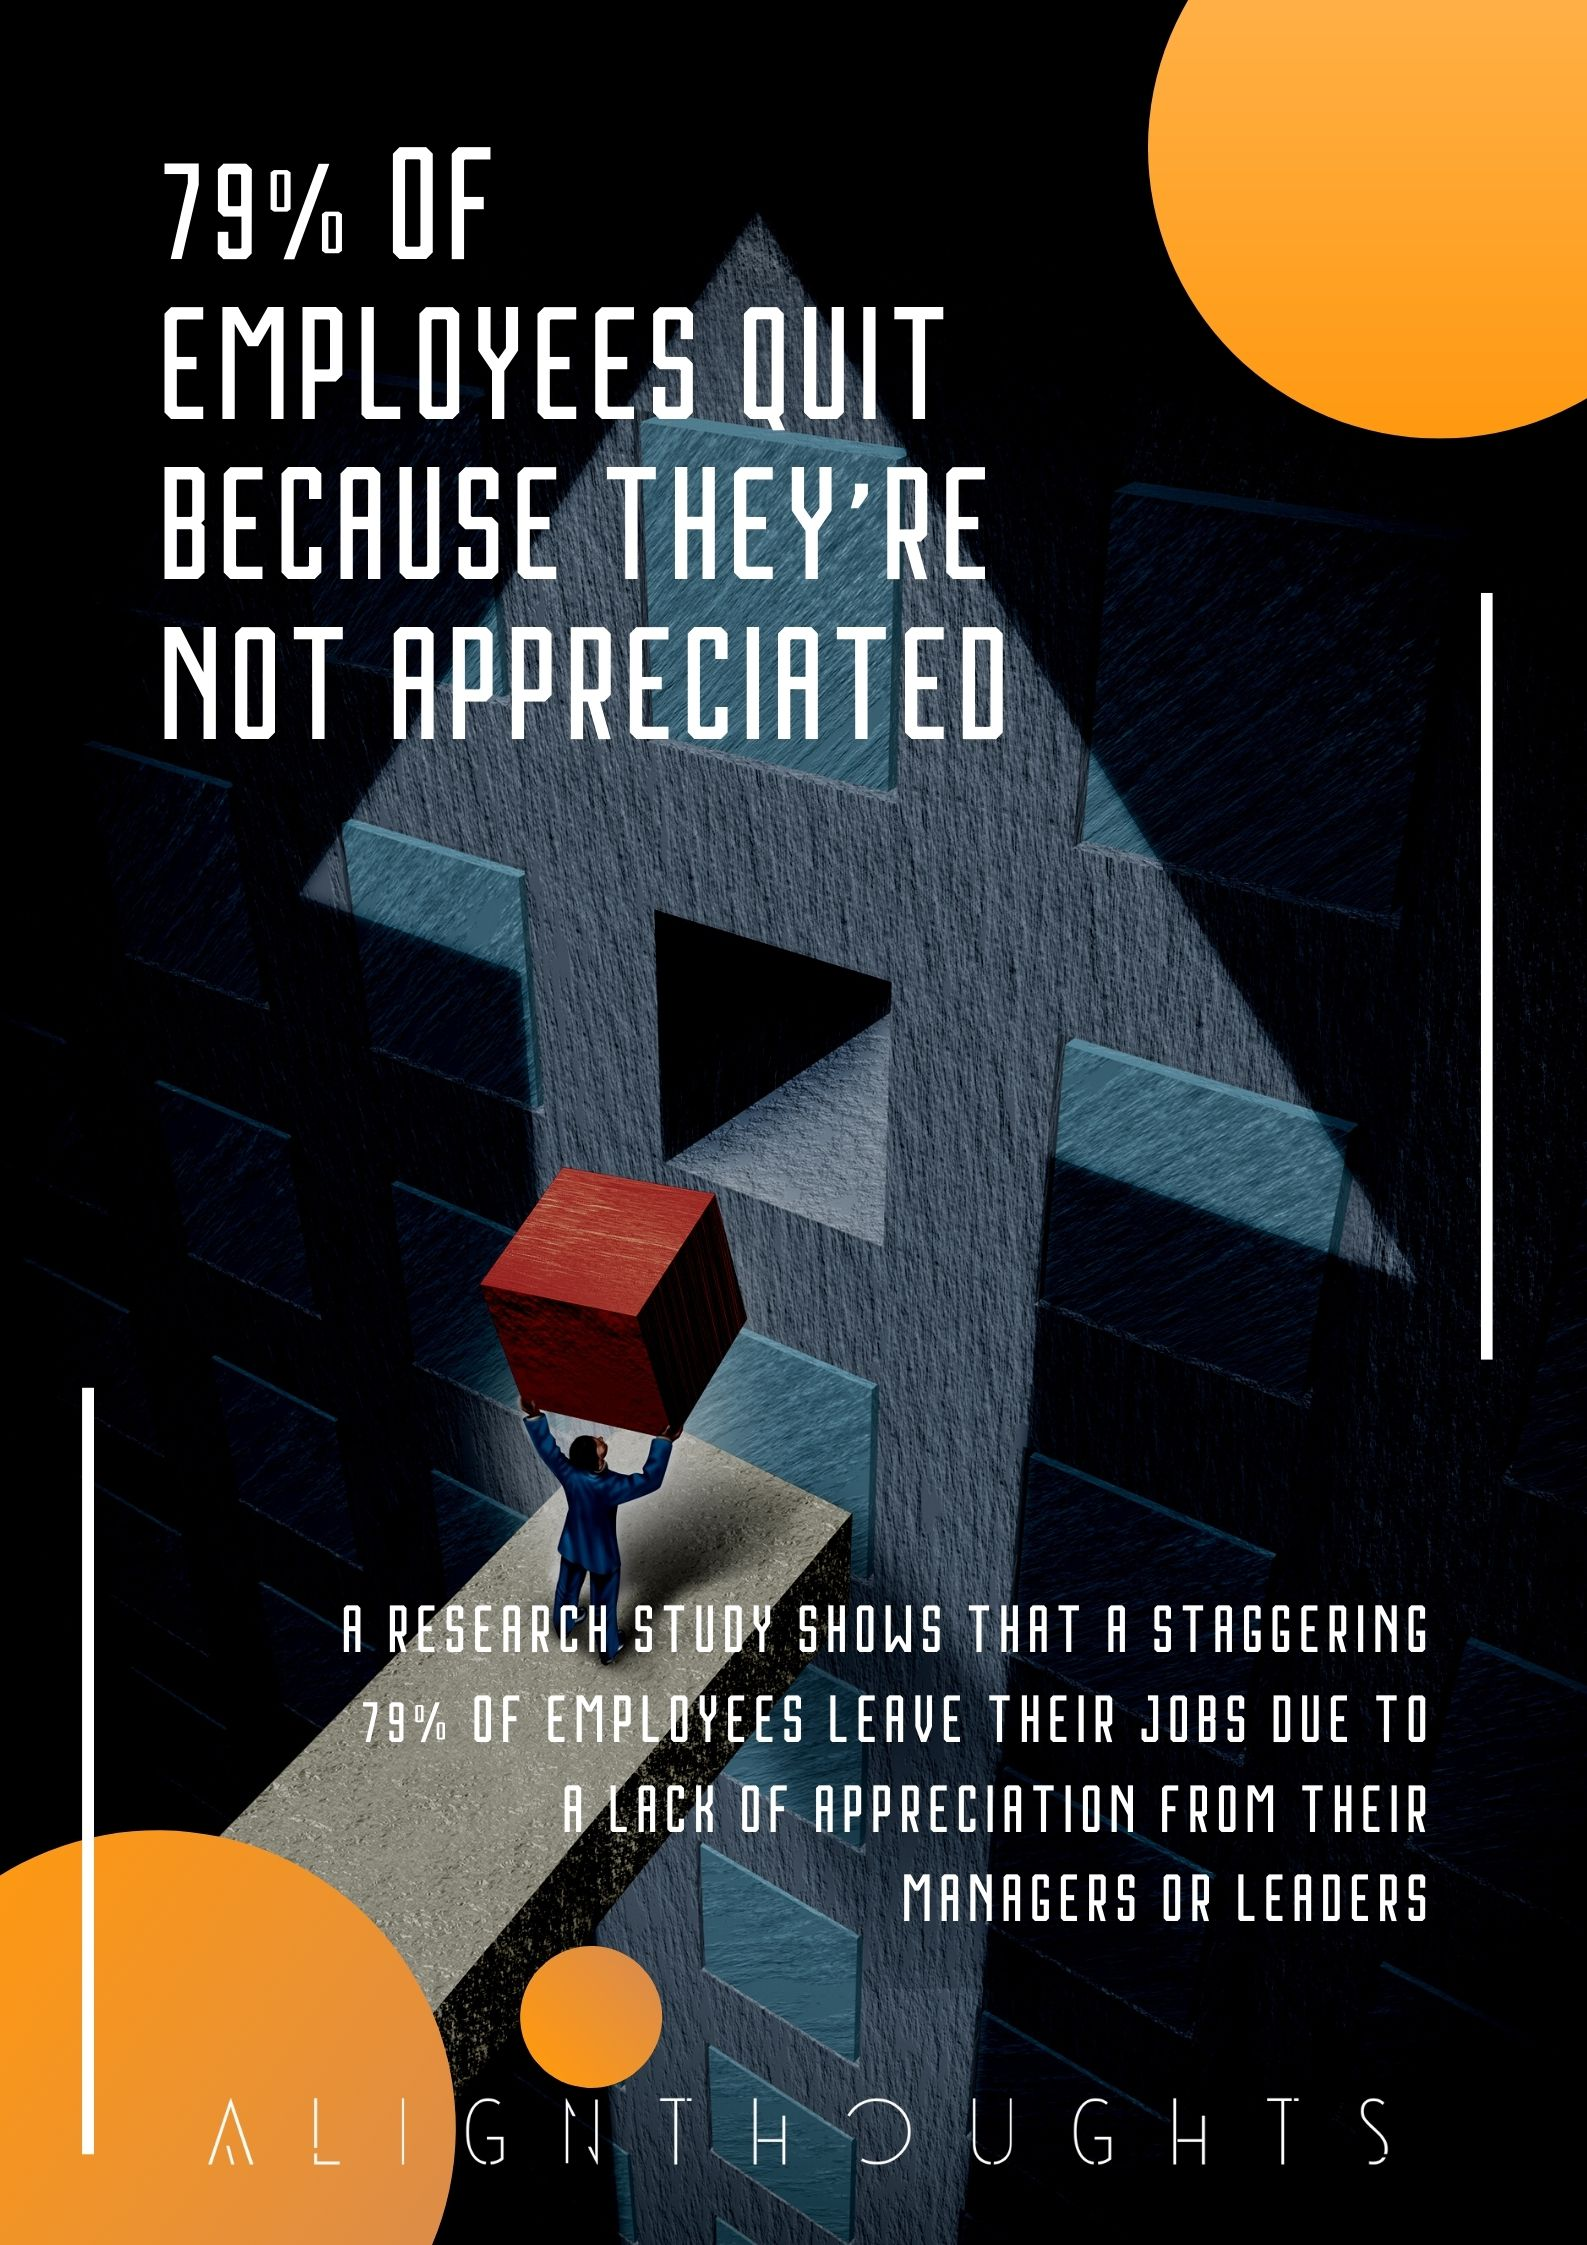 statistics on leadership in workplace-alignthoughts